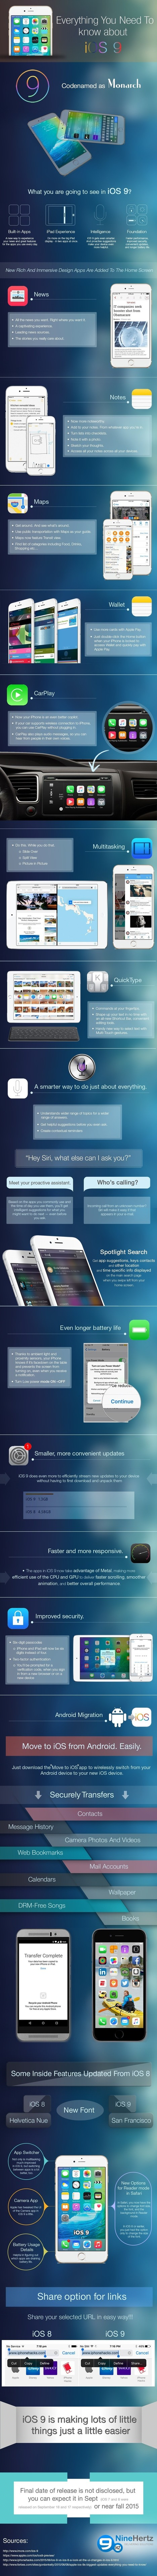 iOS 9: Features, Release Date, and Details | All Infographics | Scoop.it